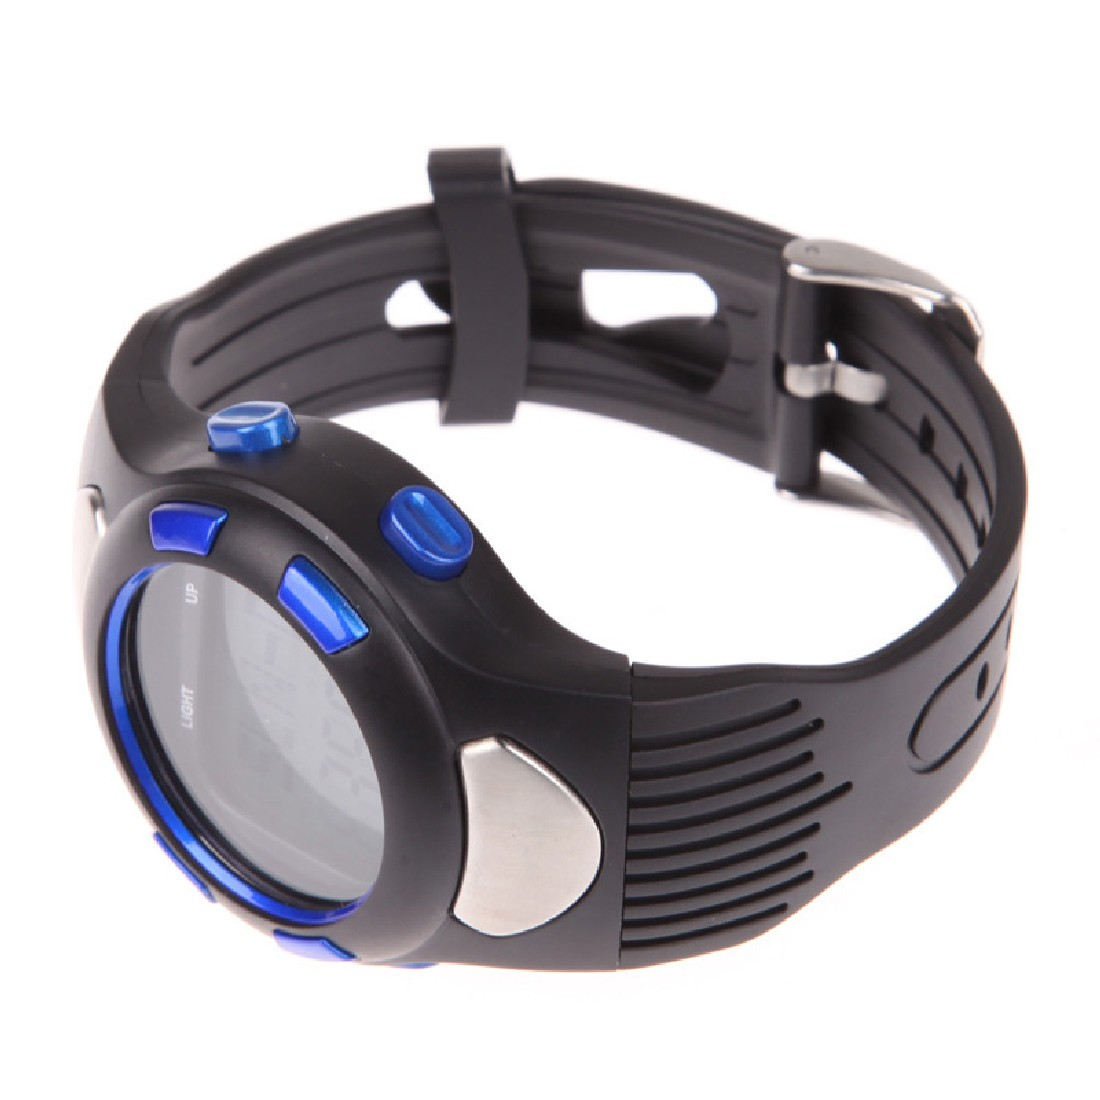 Top Quality 3D Pedometer Heart Rate Monitor Wristwatch For Running Fitness With Backlight Blue